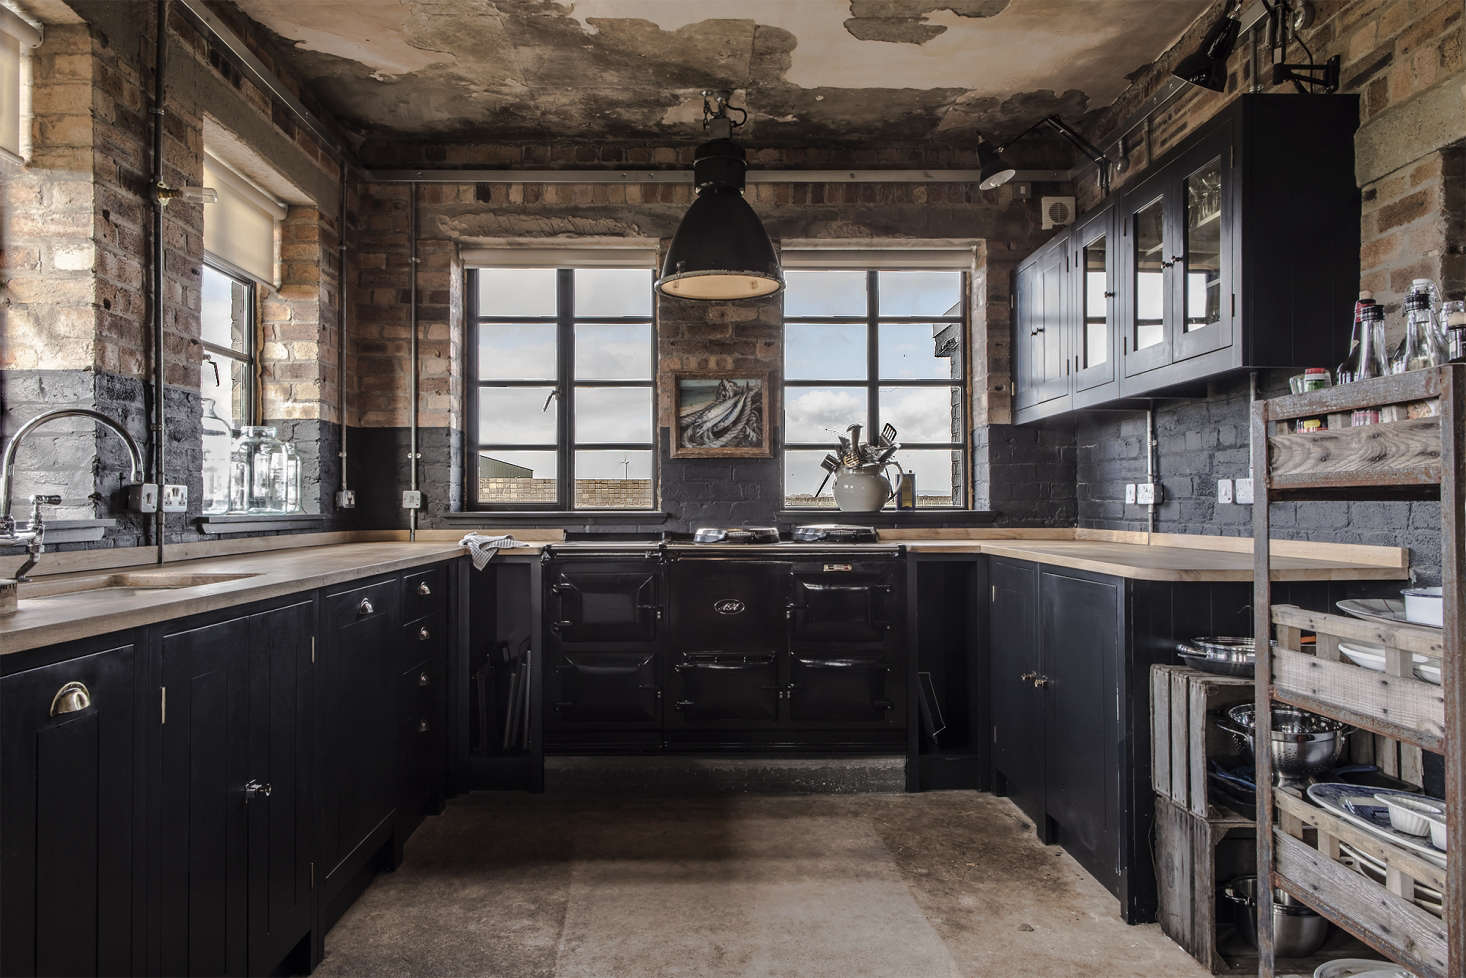 The recently installed kitchen—in what had been the officer&#8